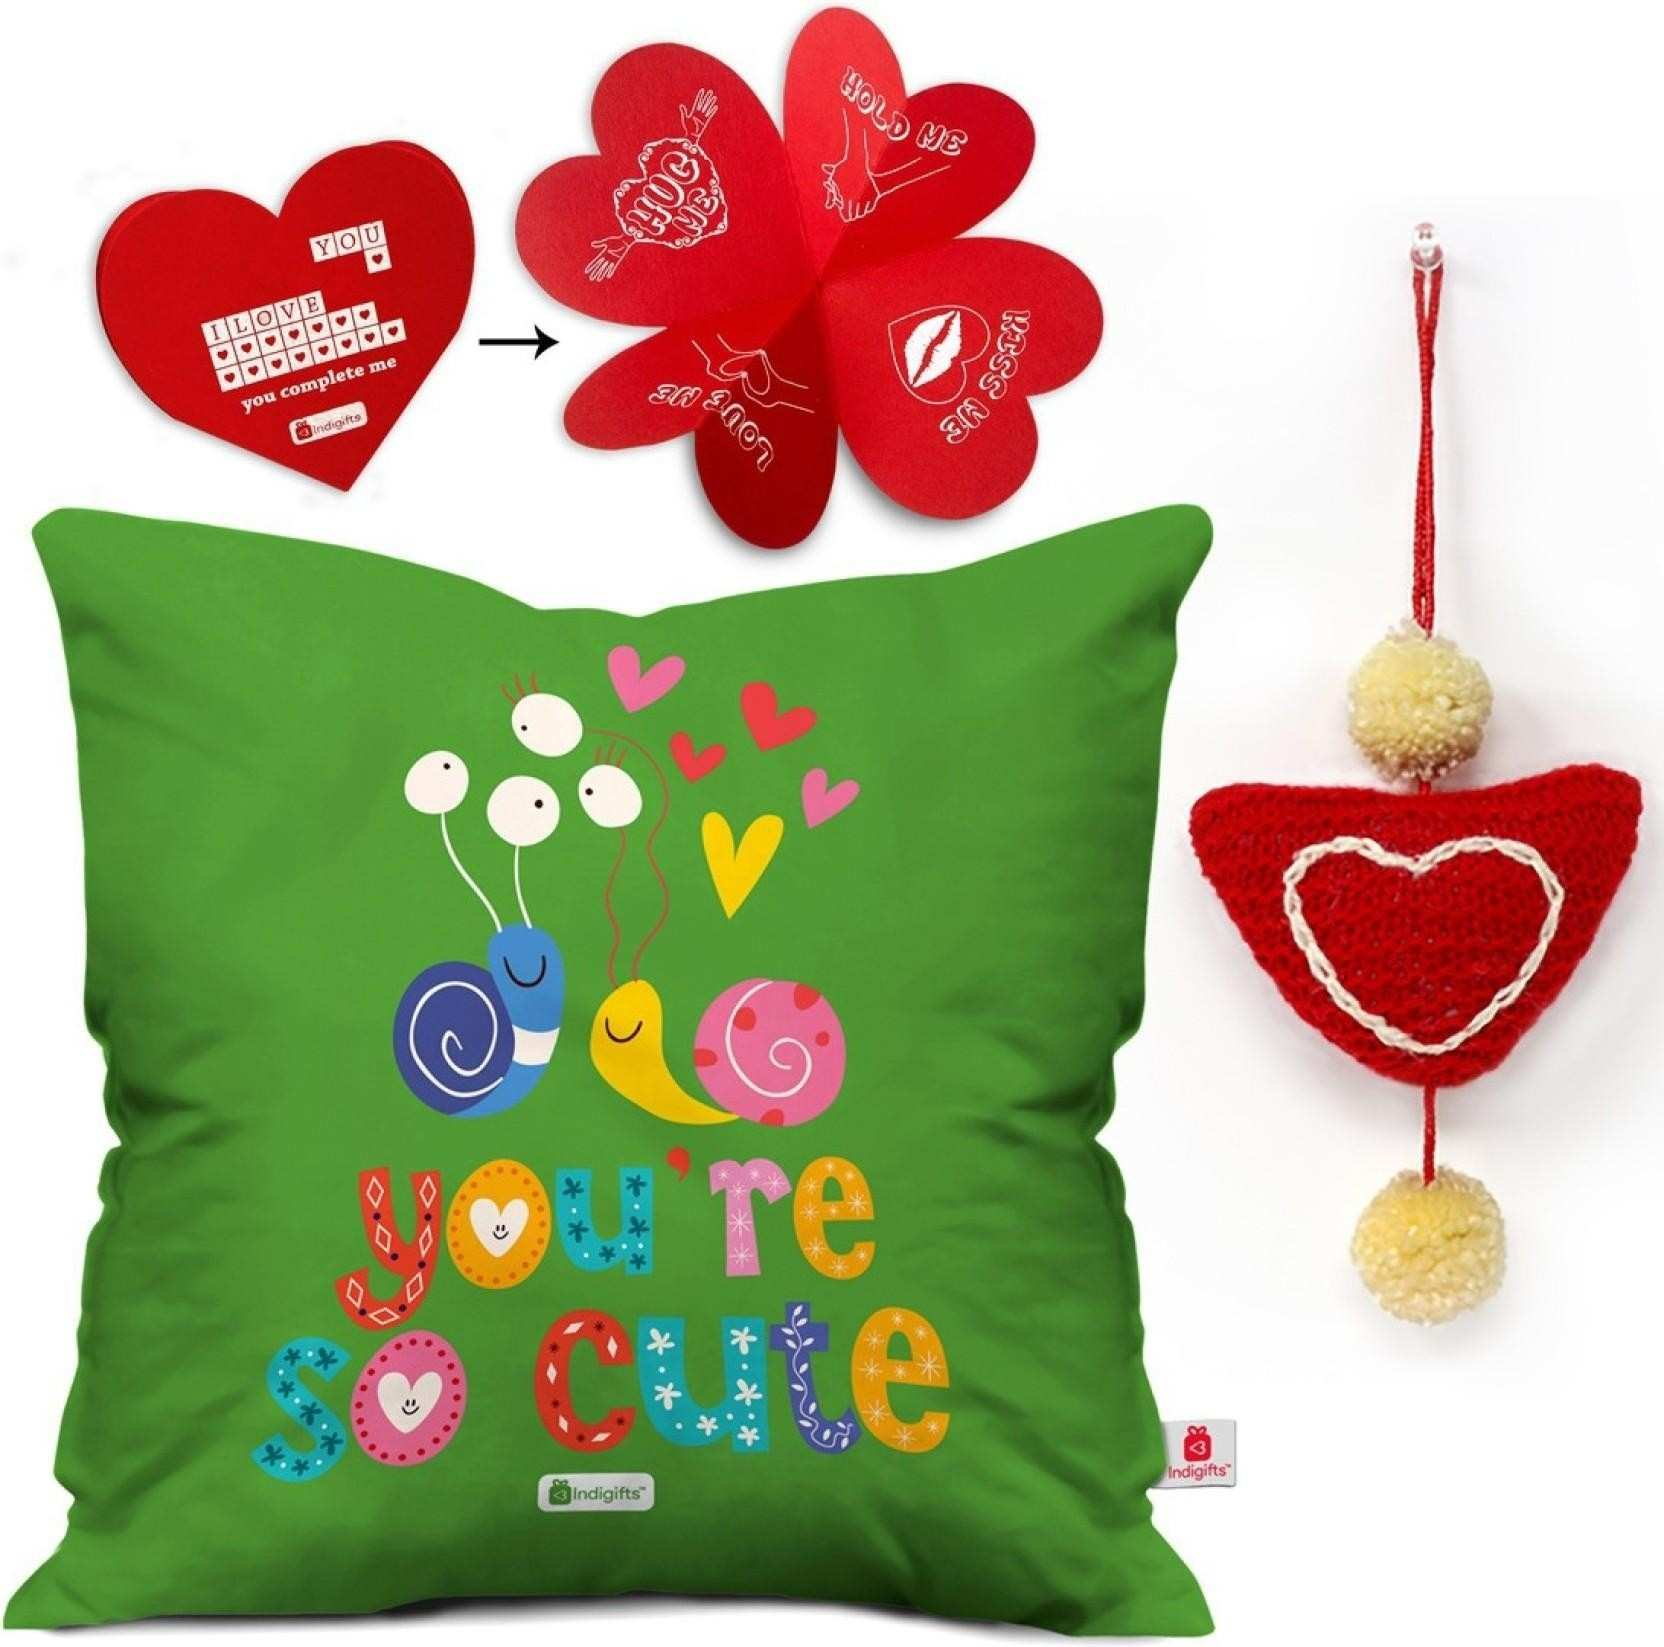 His Bettwasche Neu Bed Pillows that Stay Cool Beautiful Sehr Gehend